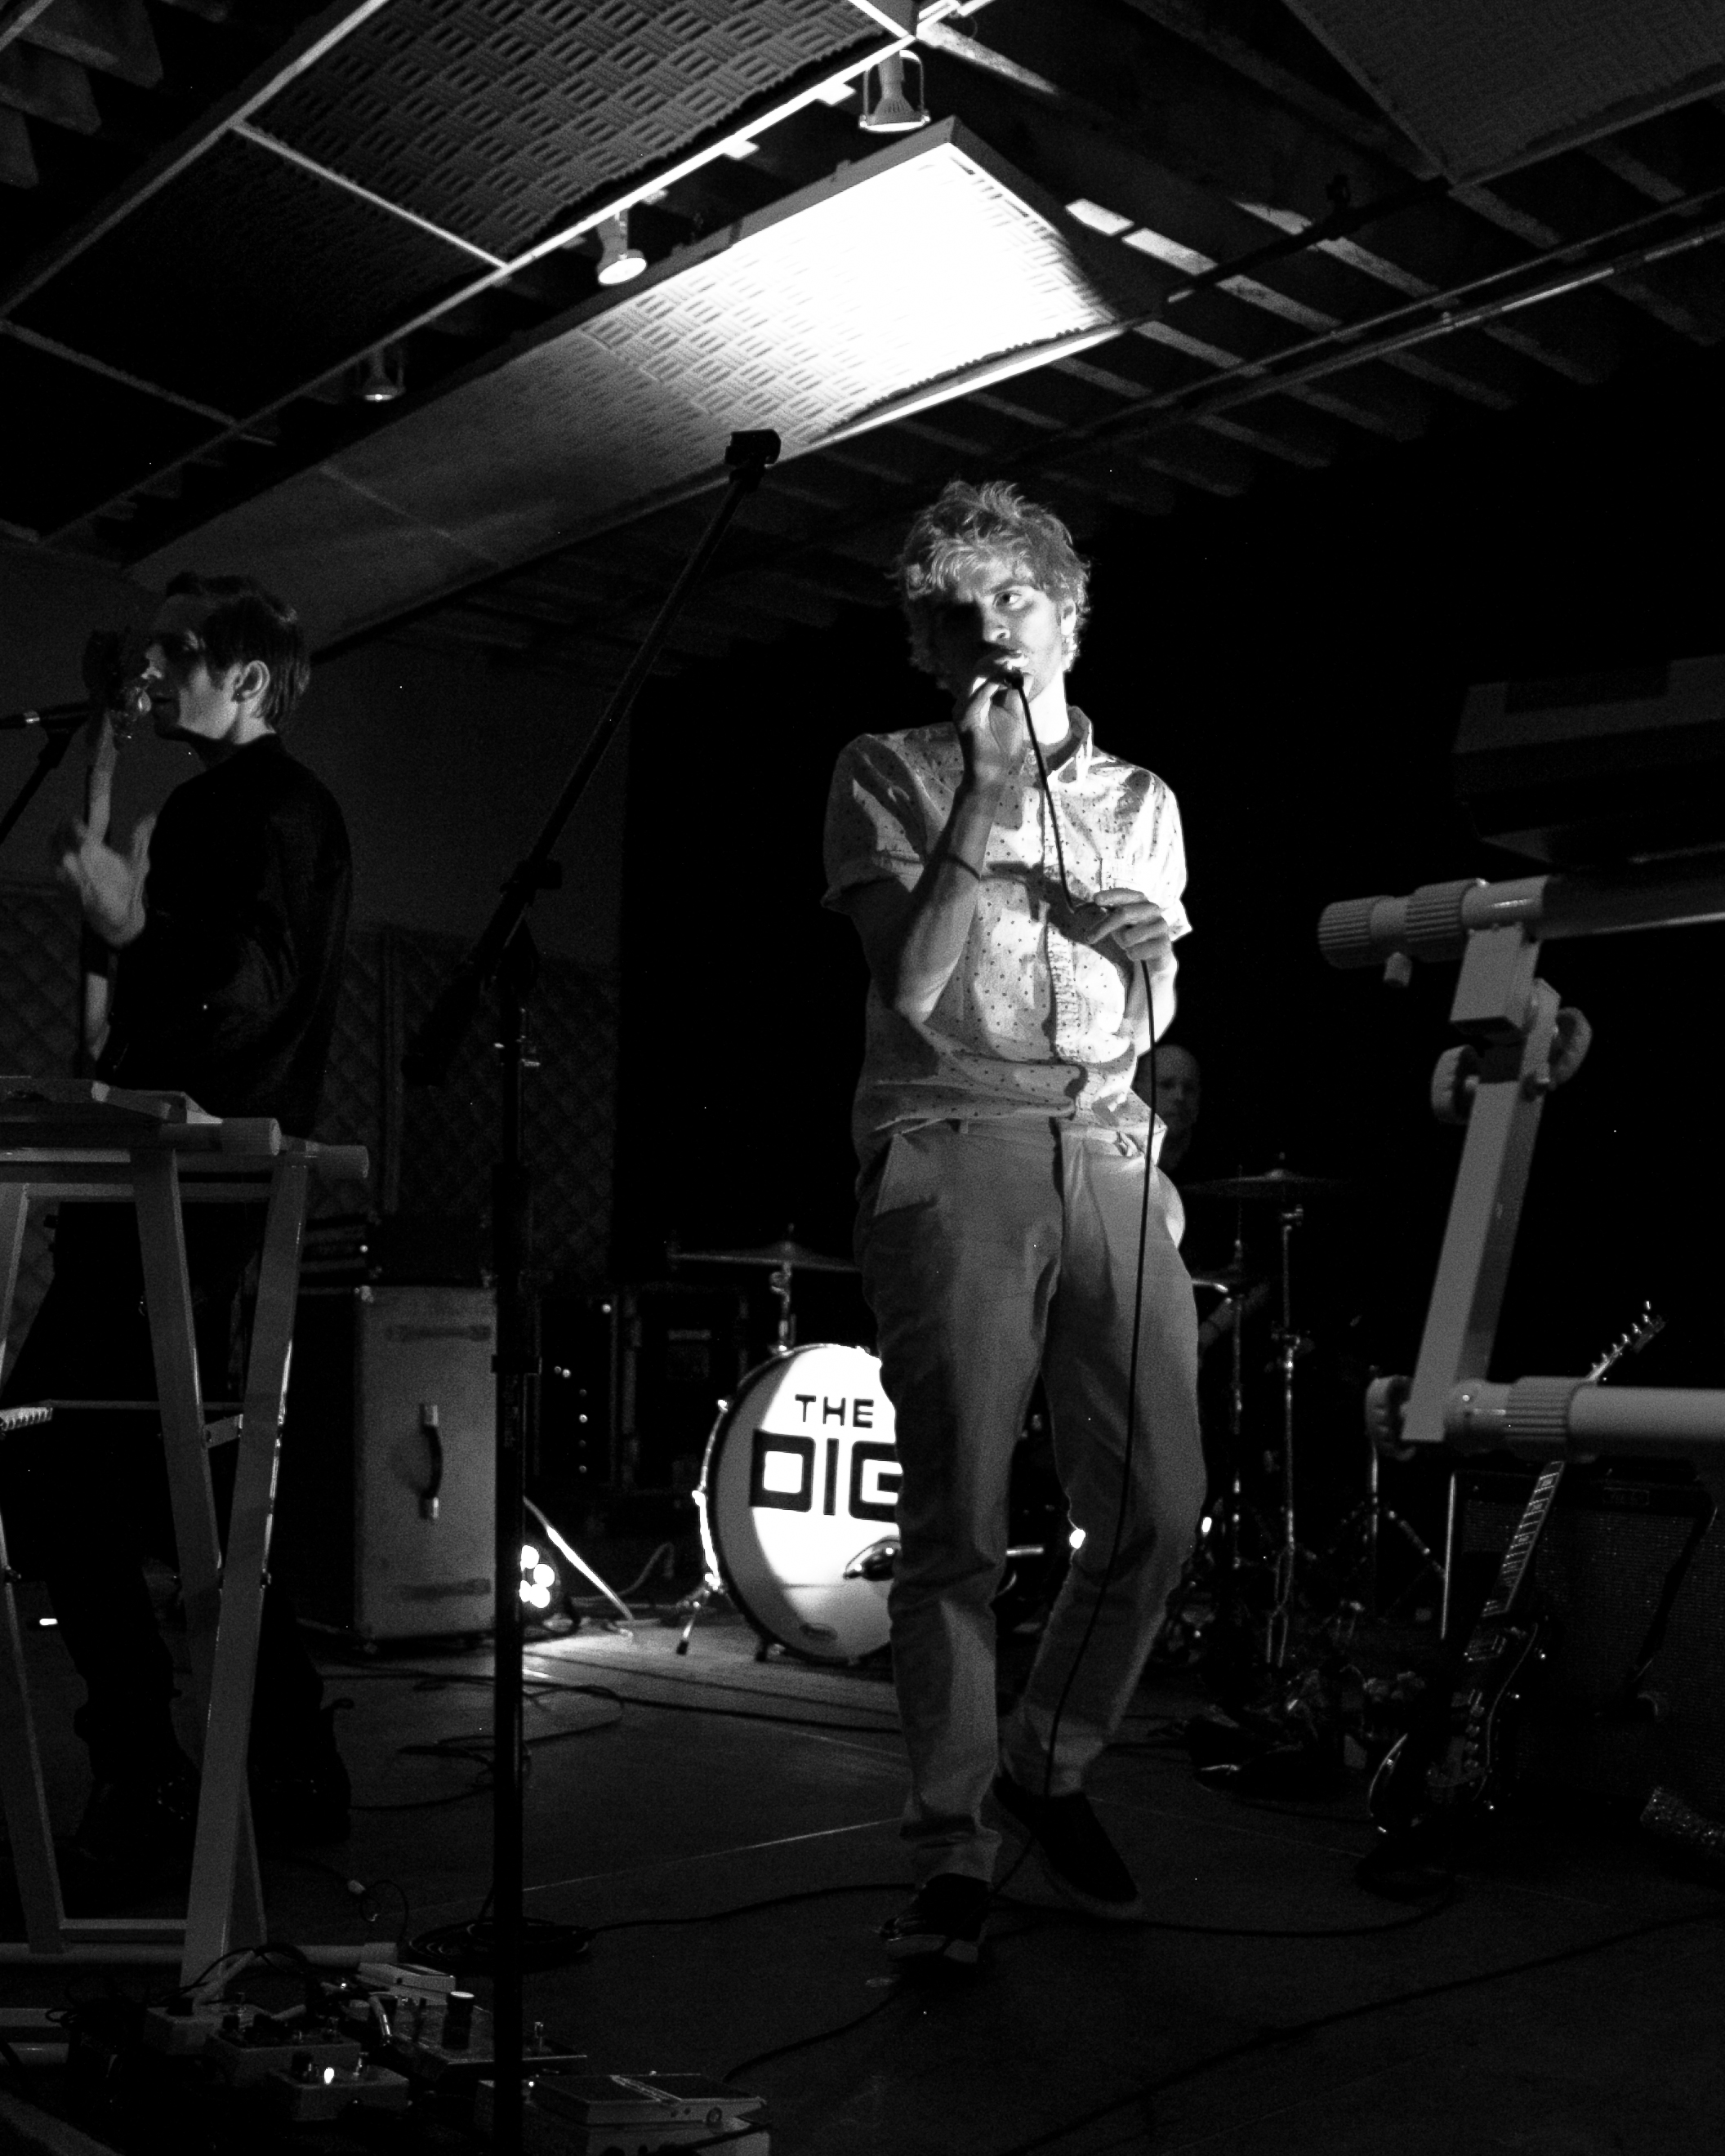 the dig - 2.18.17 - kev selects (19 of 23).jpg